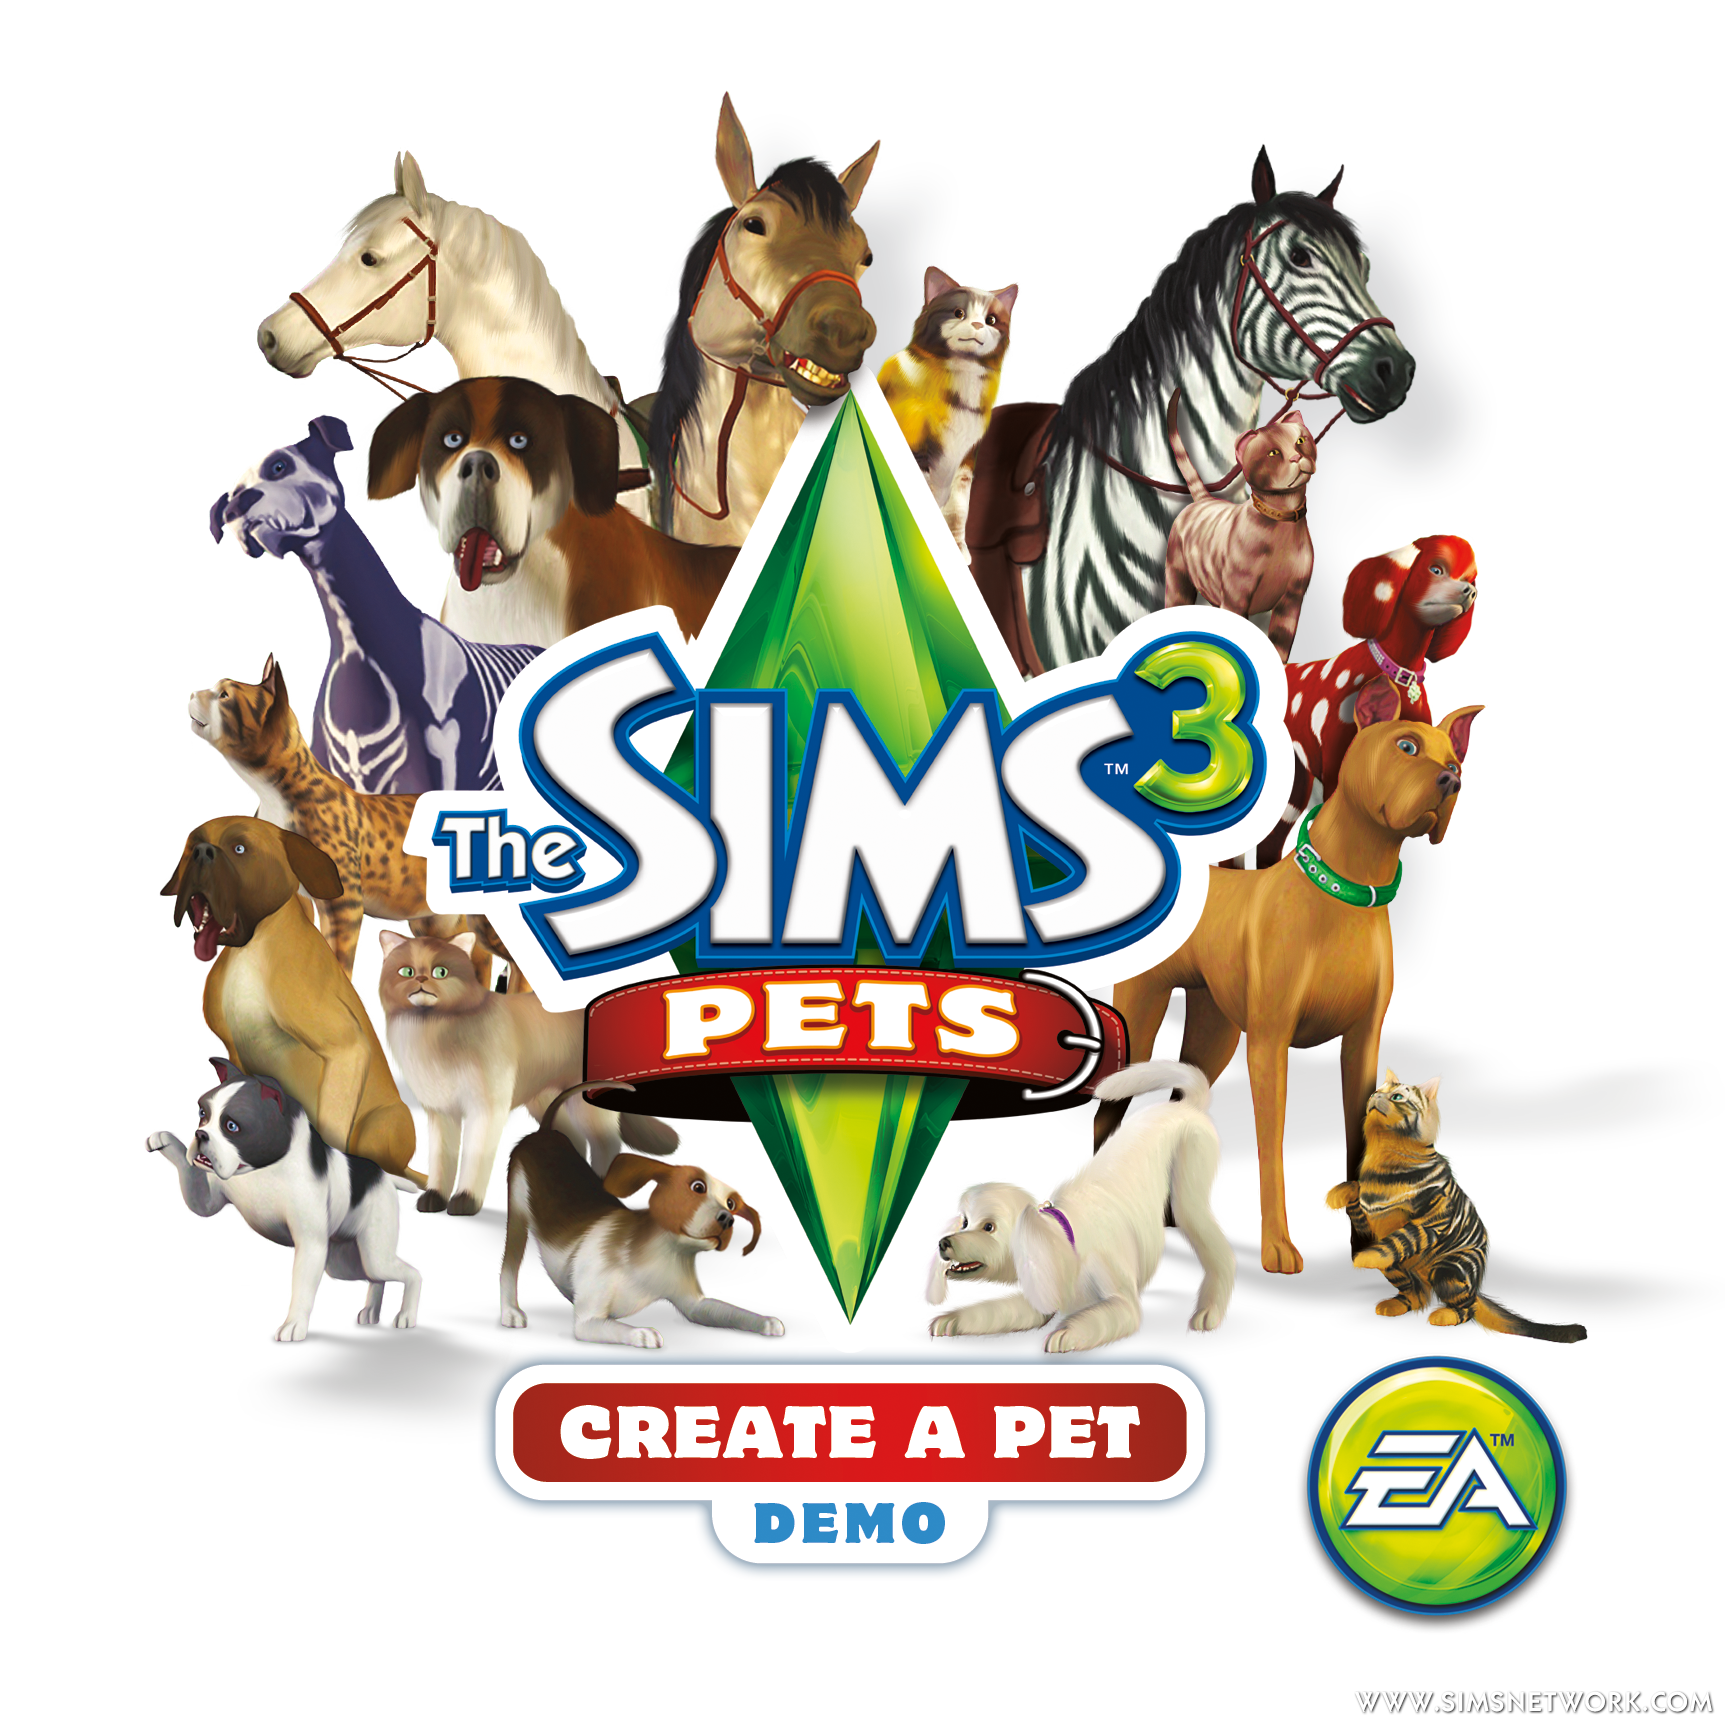 The sims 3 pets cheats xbox 360 - 81aa